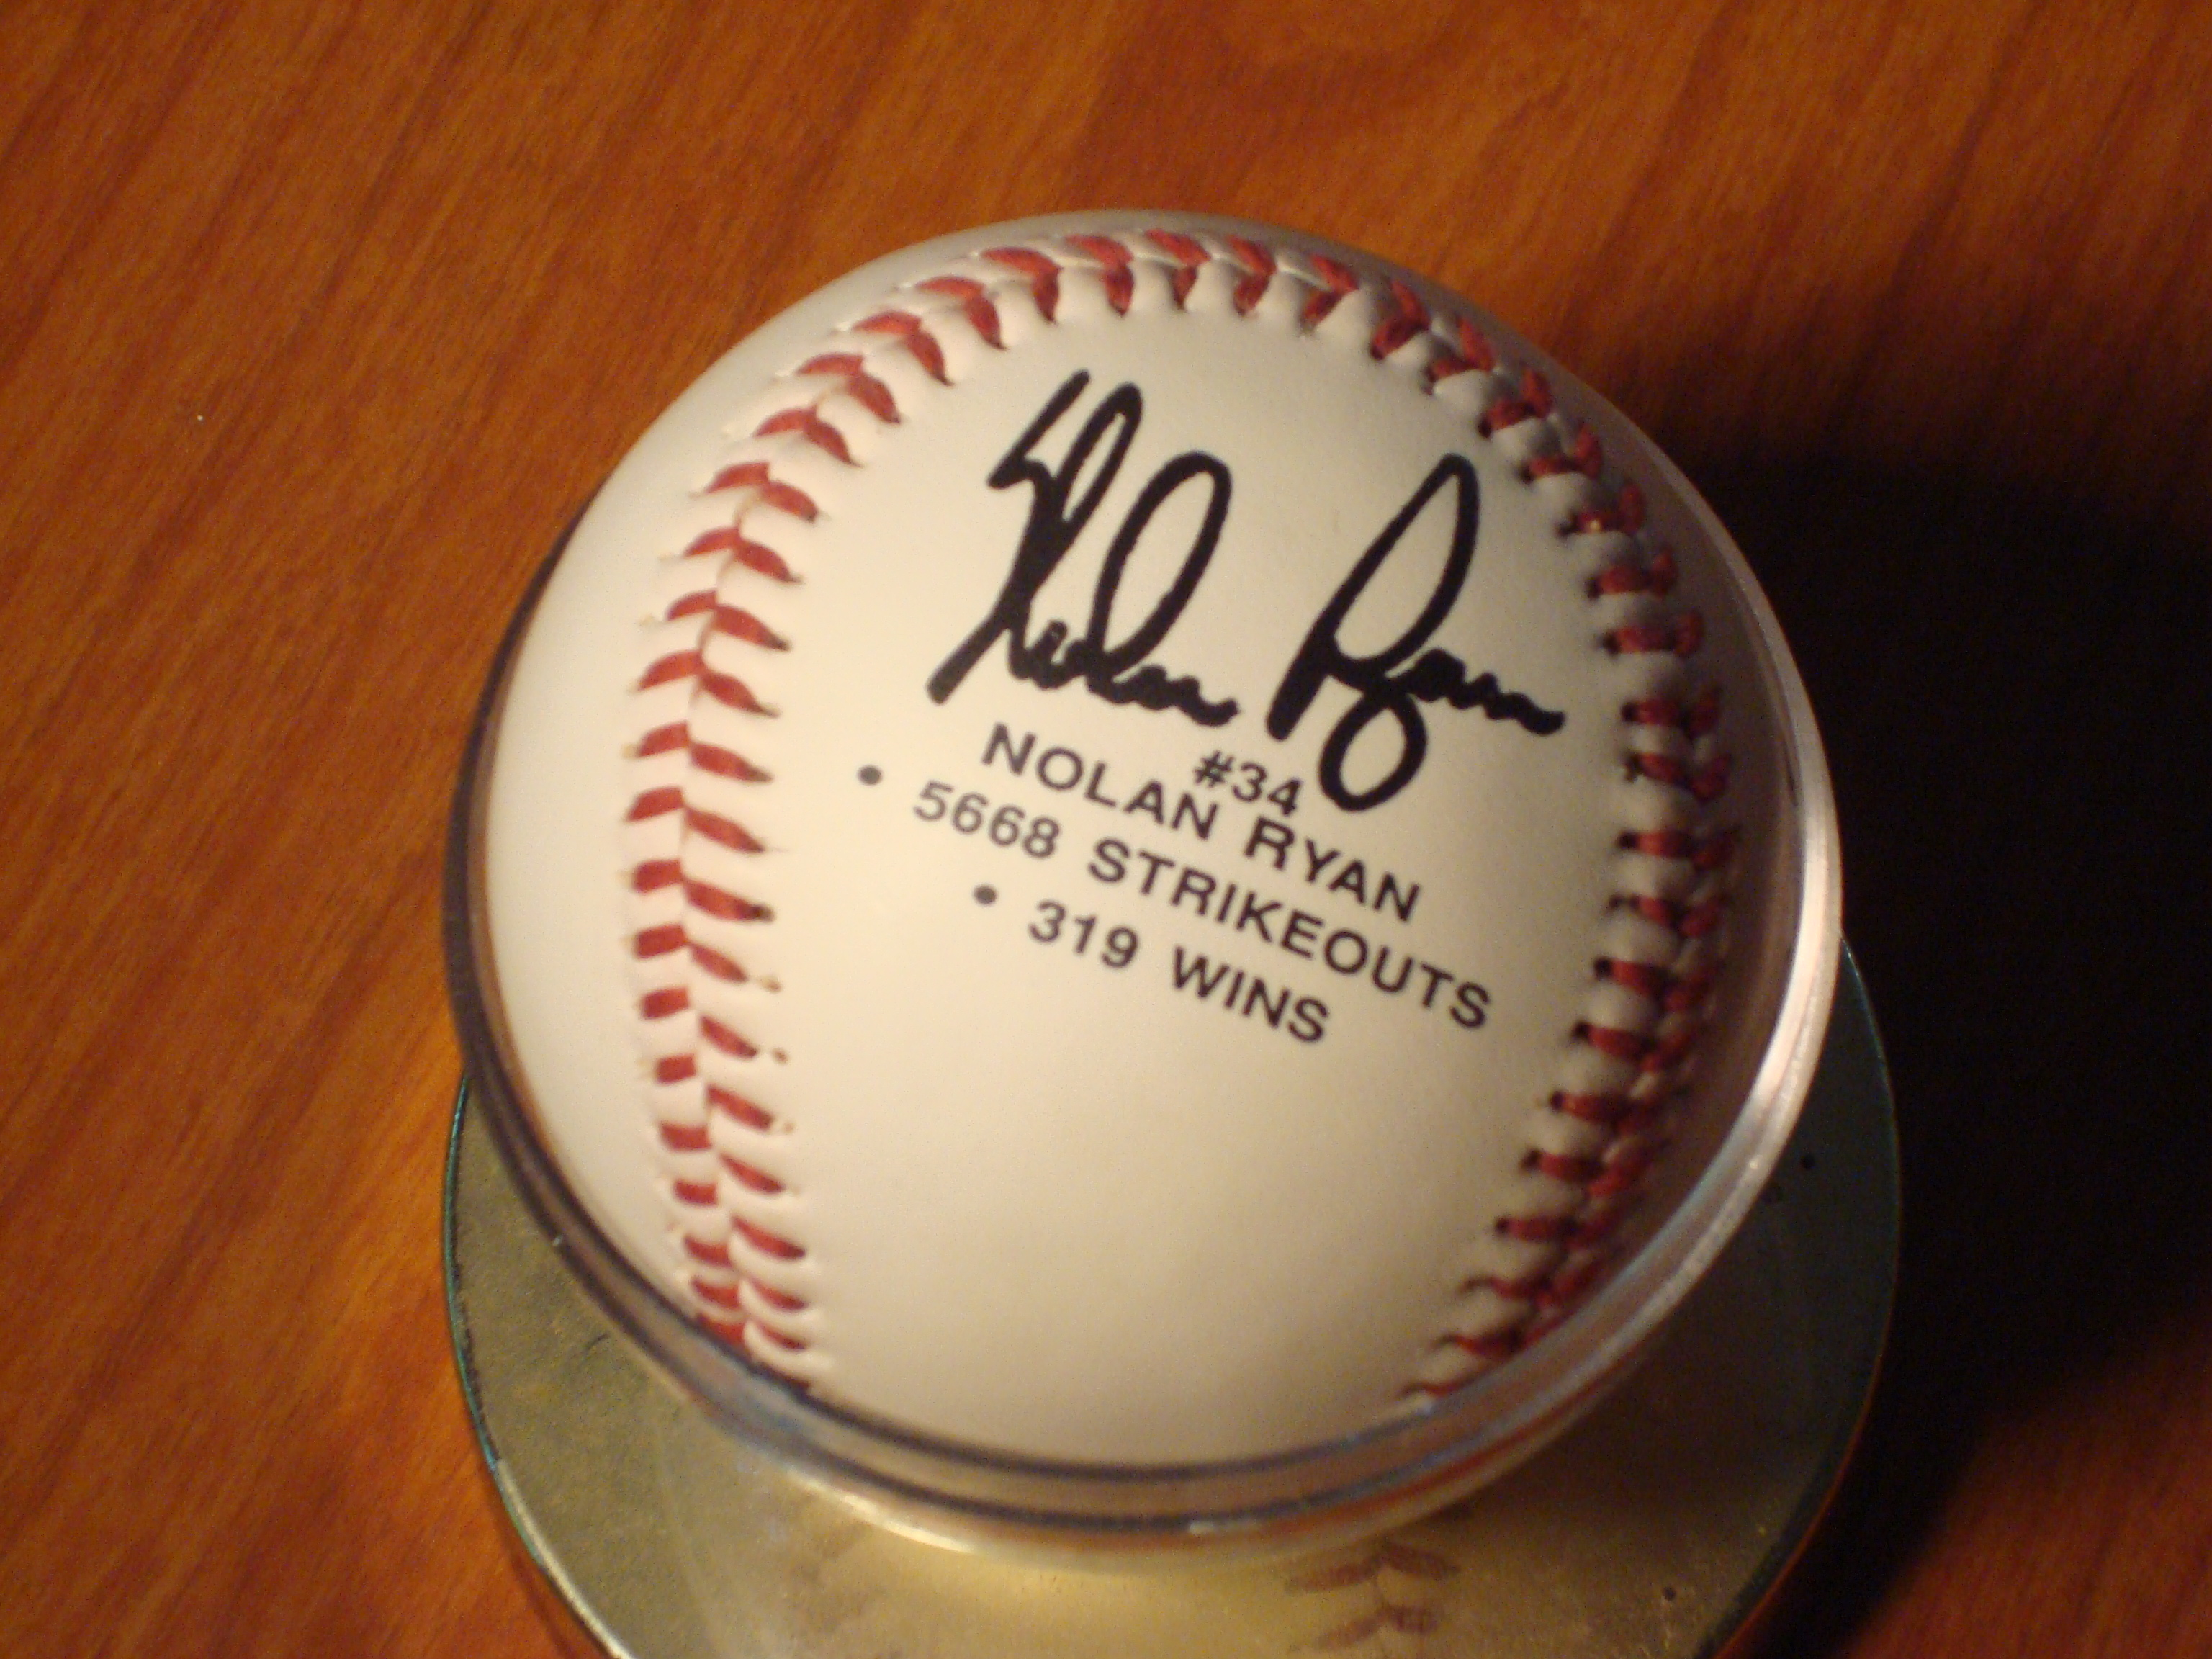 Official Commerative 5,668 Strikeouts & 319 Wins Autographed Nolan Ryan Ball